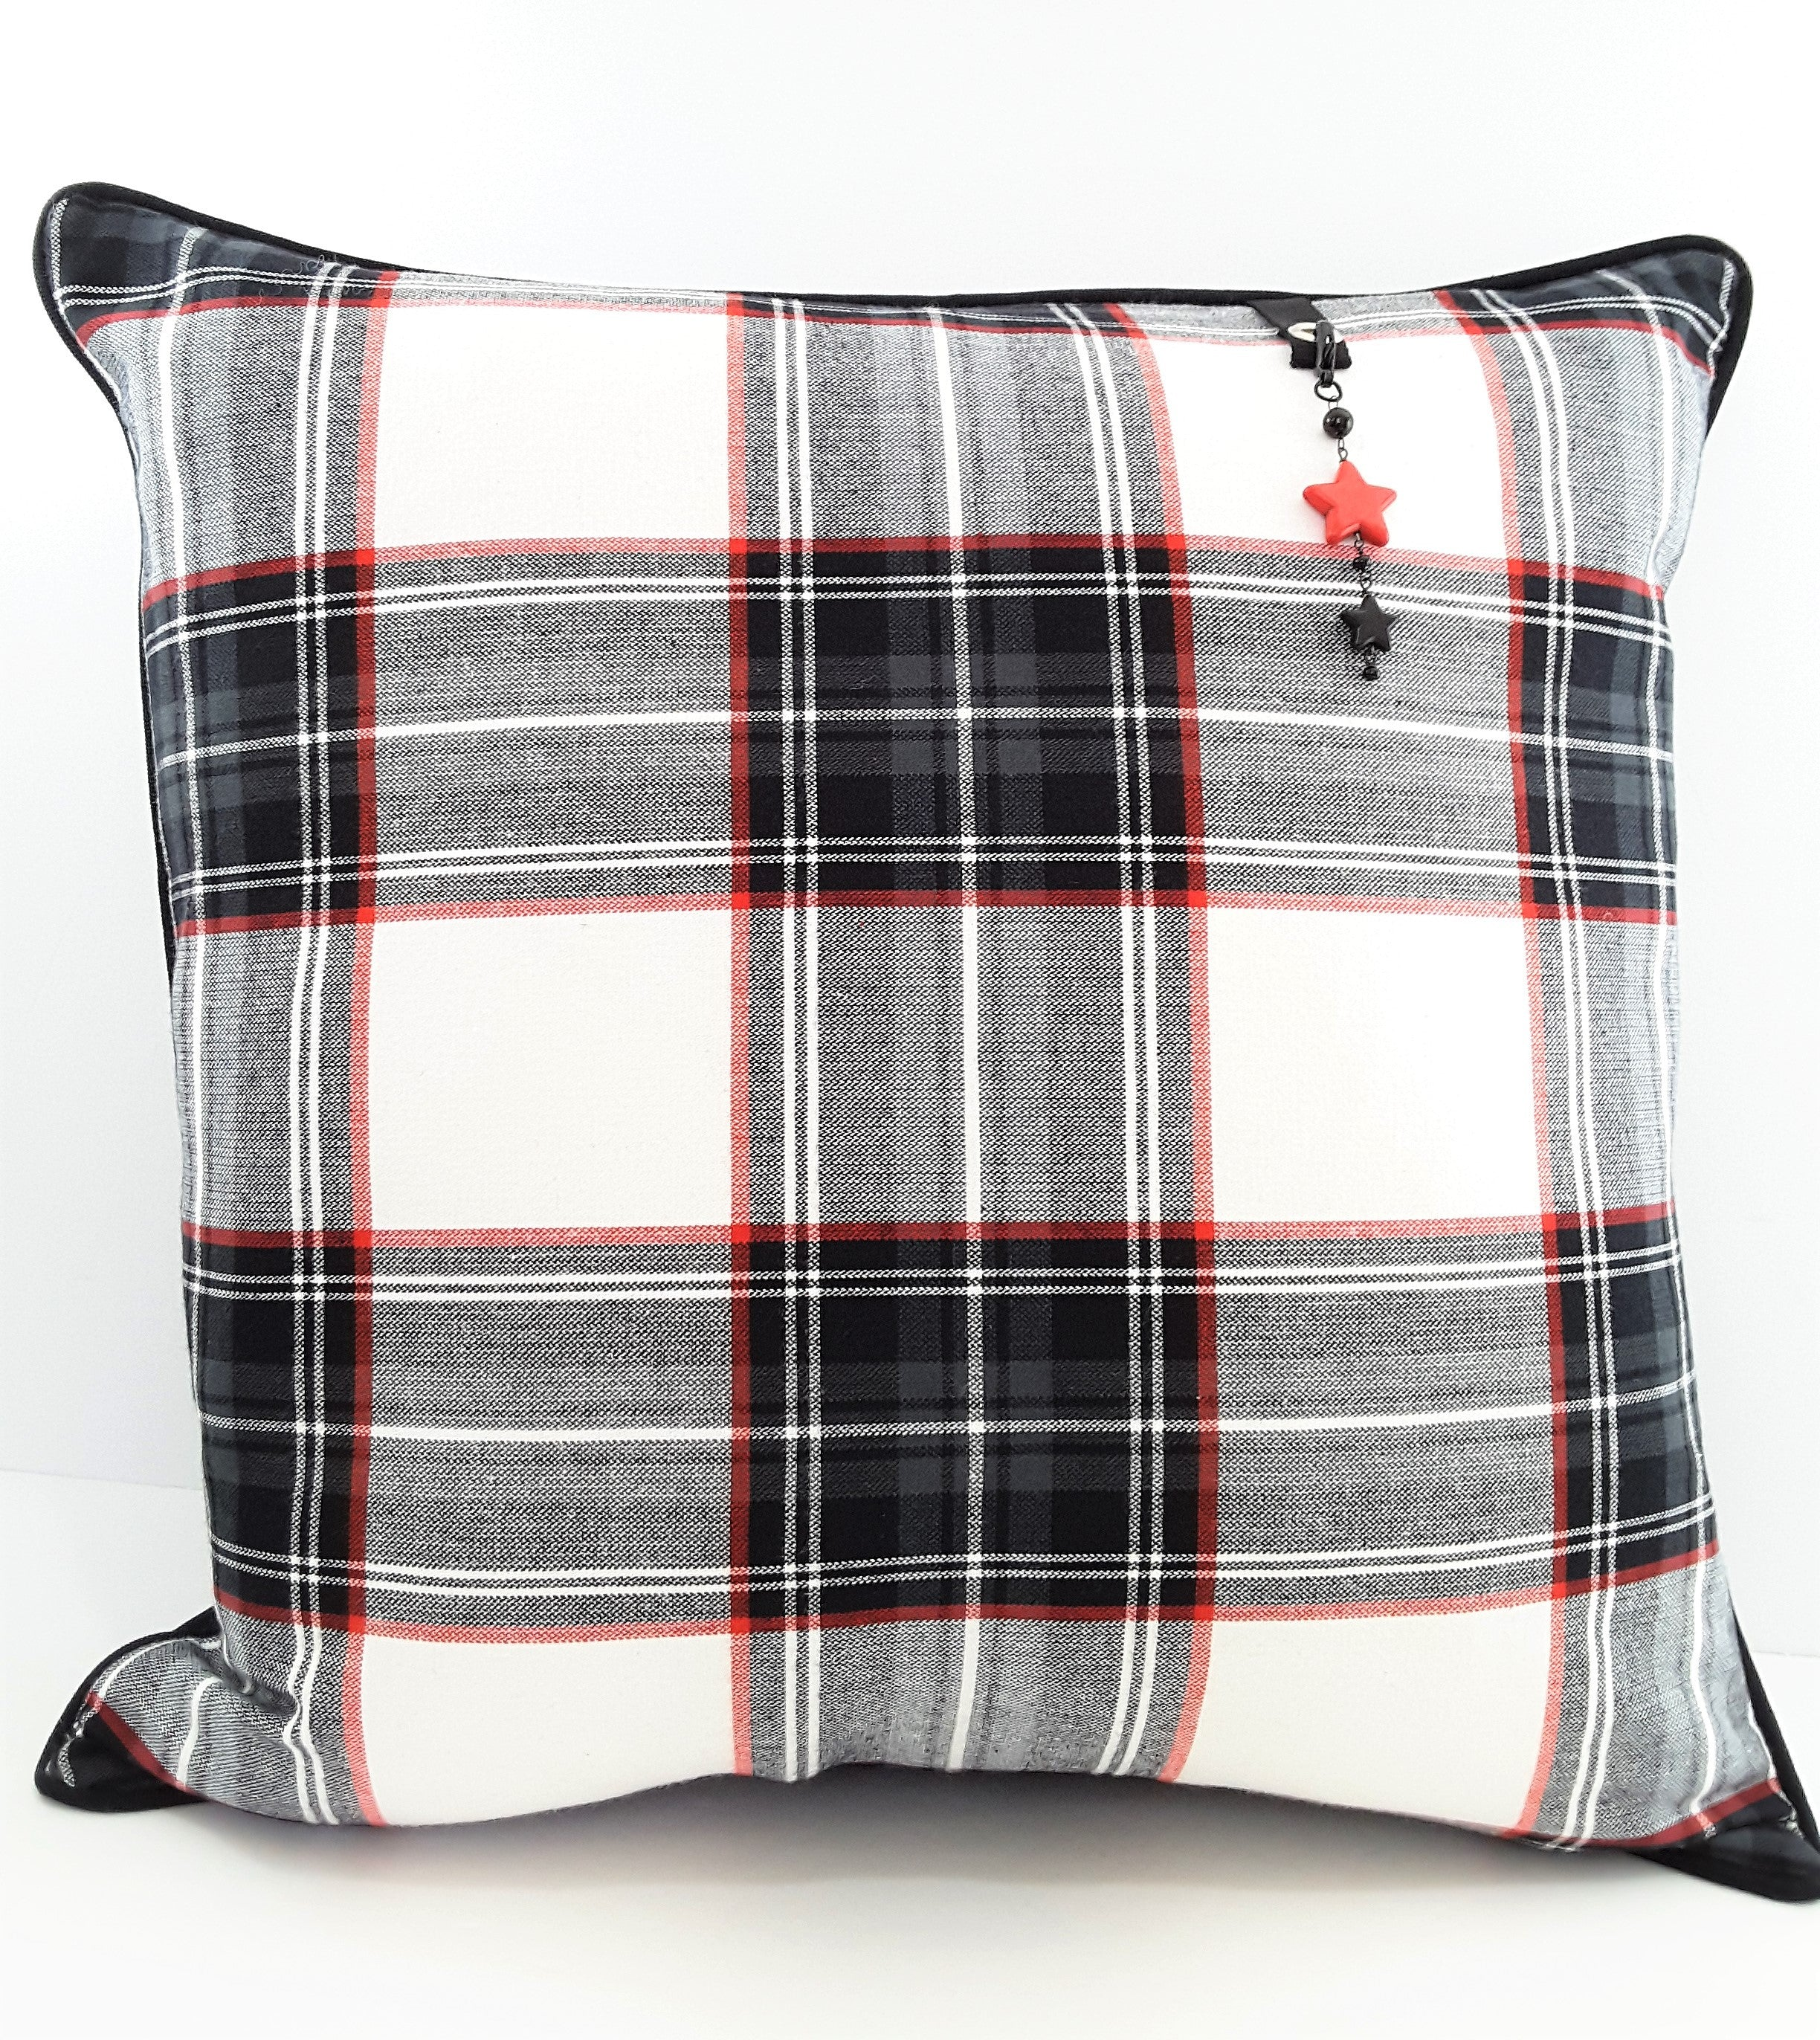 RED STAR PILLOW CHARM HANGING FROM PLAID PILLOW